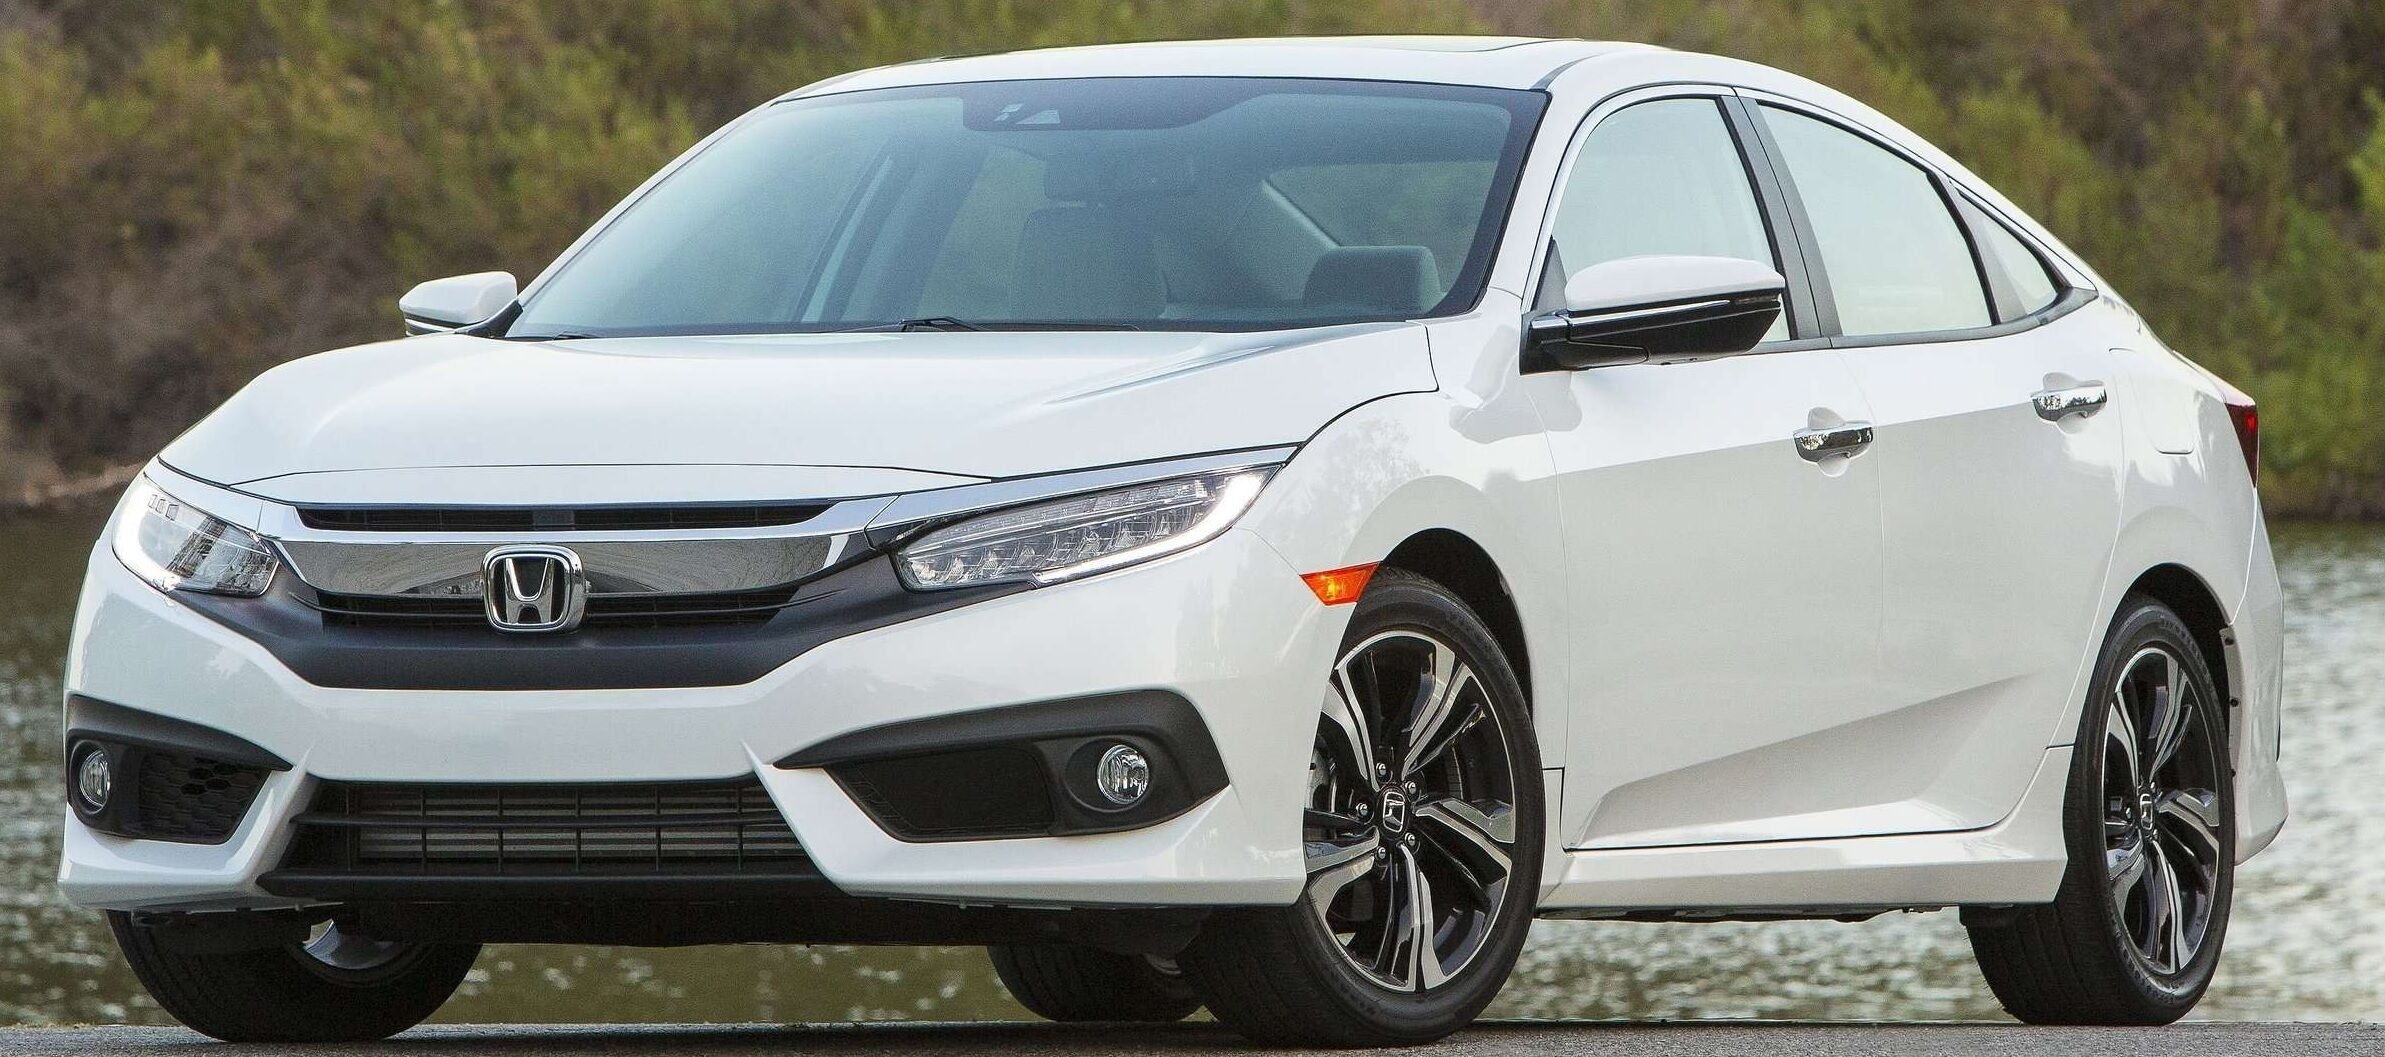 queens honda dealer ny 2016 civic sedan suffolk county